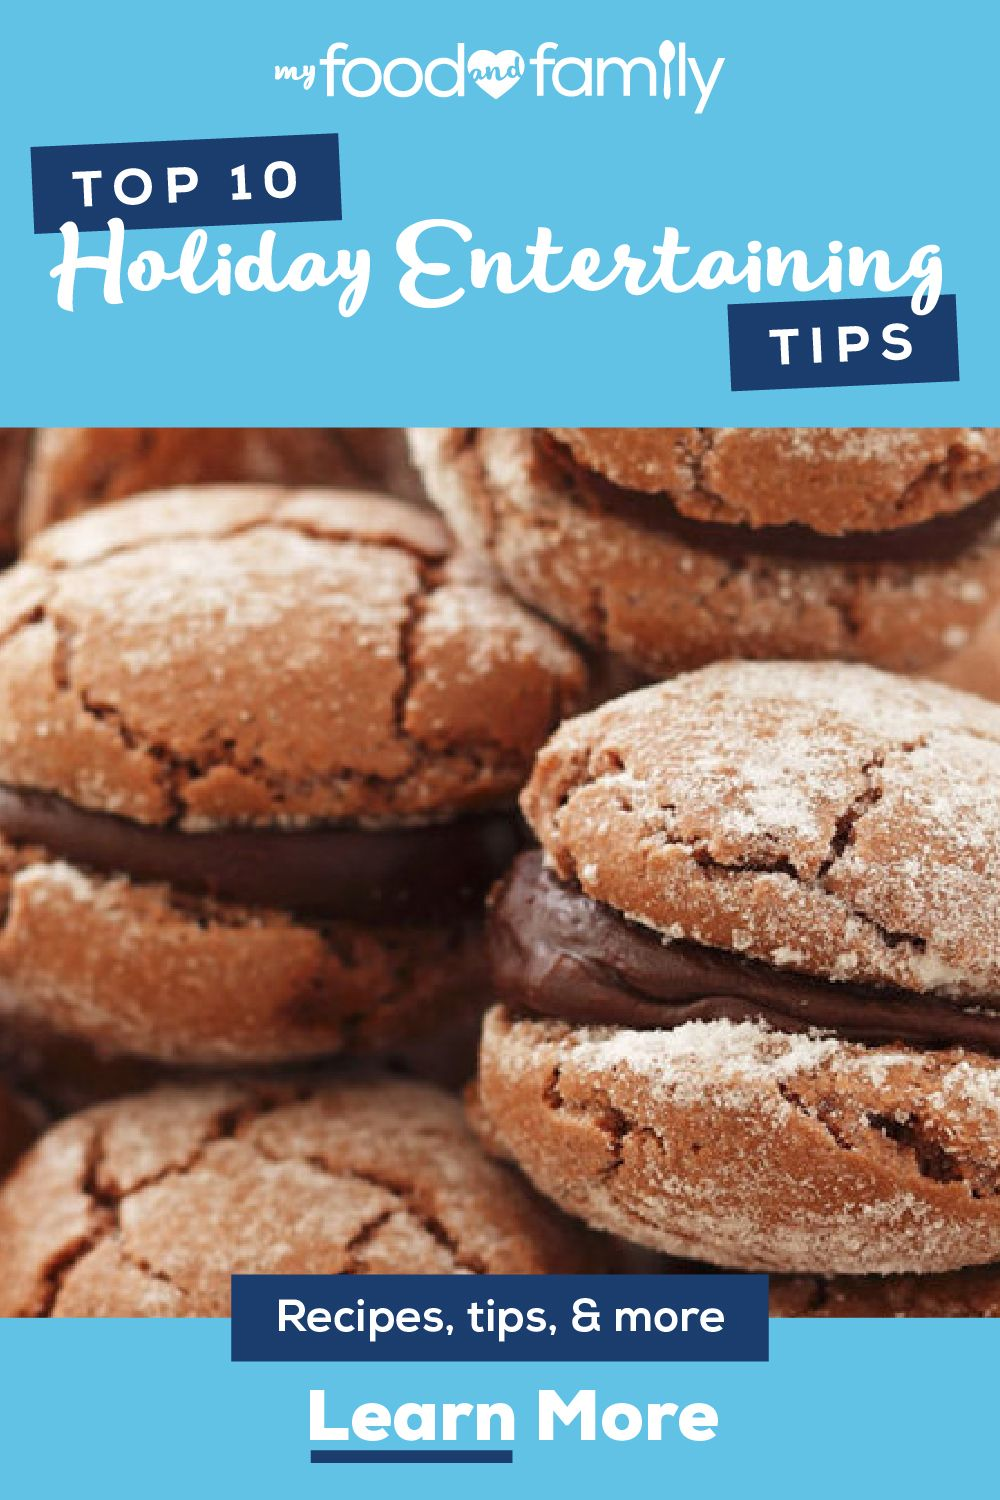 Top 10 Holiday Entertaining Tips